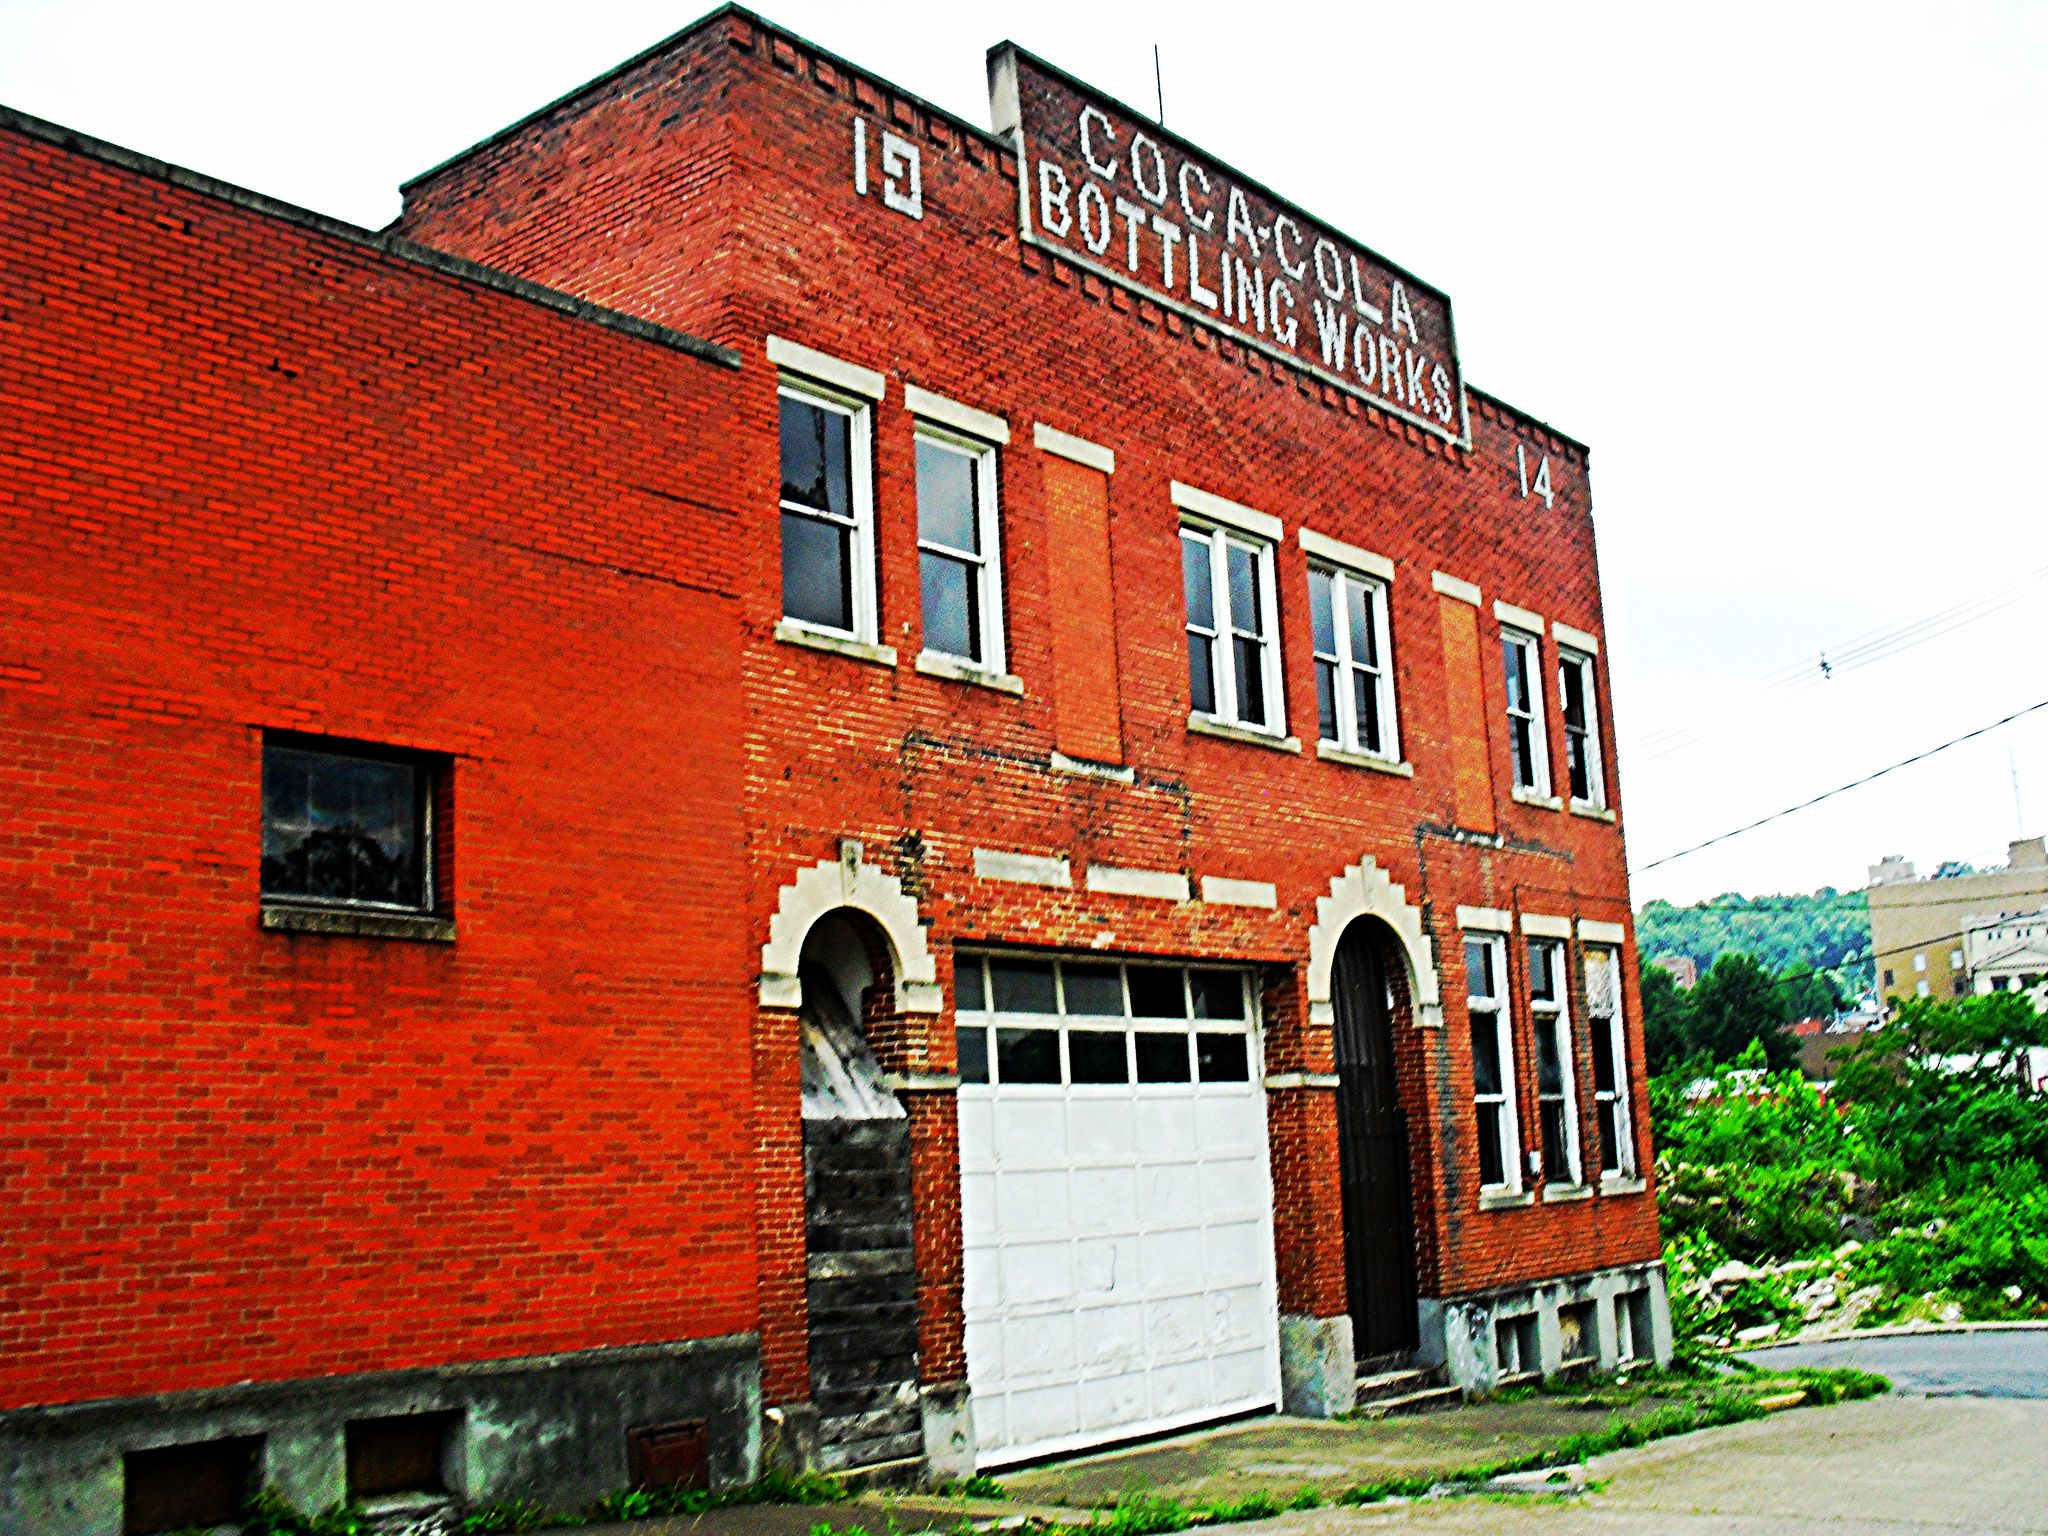 Coca-Cola Bottling Works,Glen Elk,Clarksburg WV in 2019